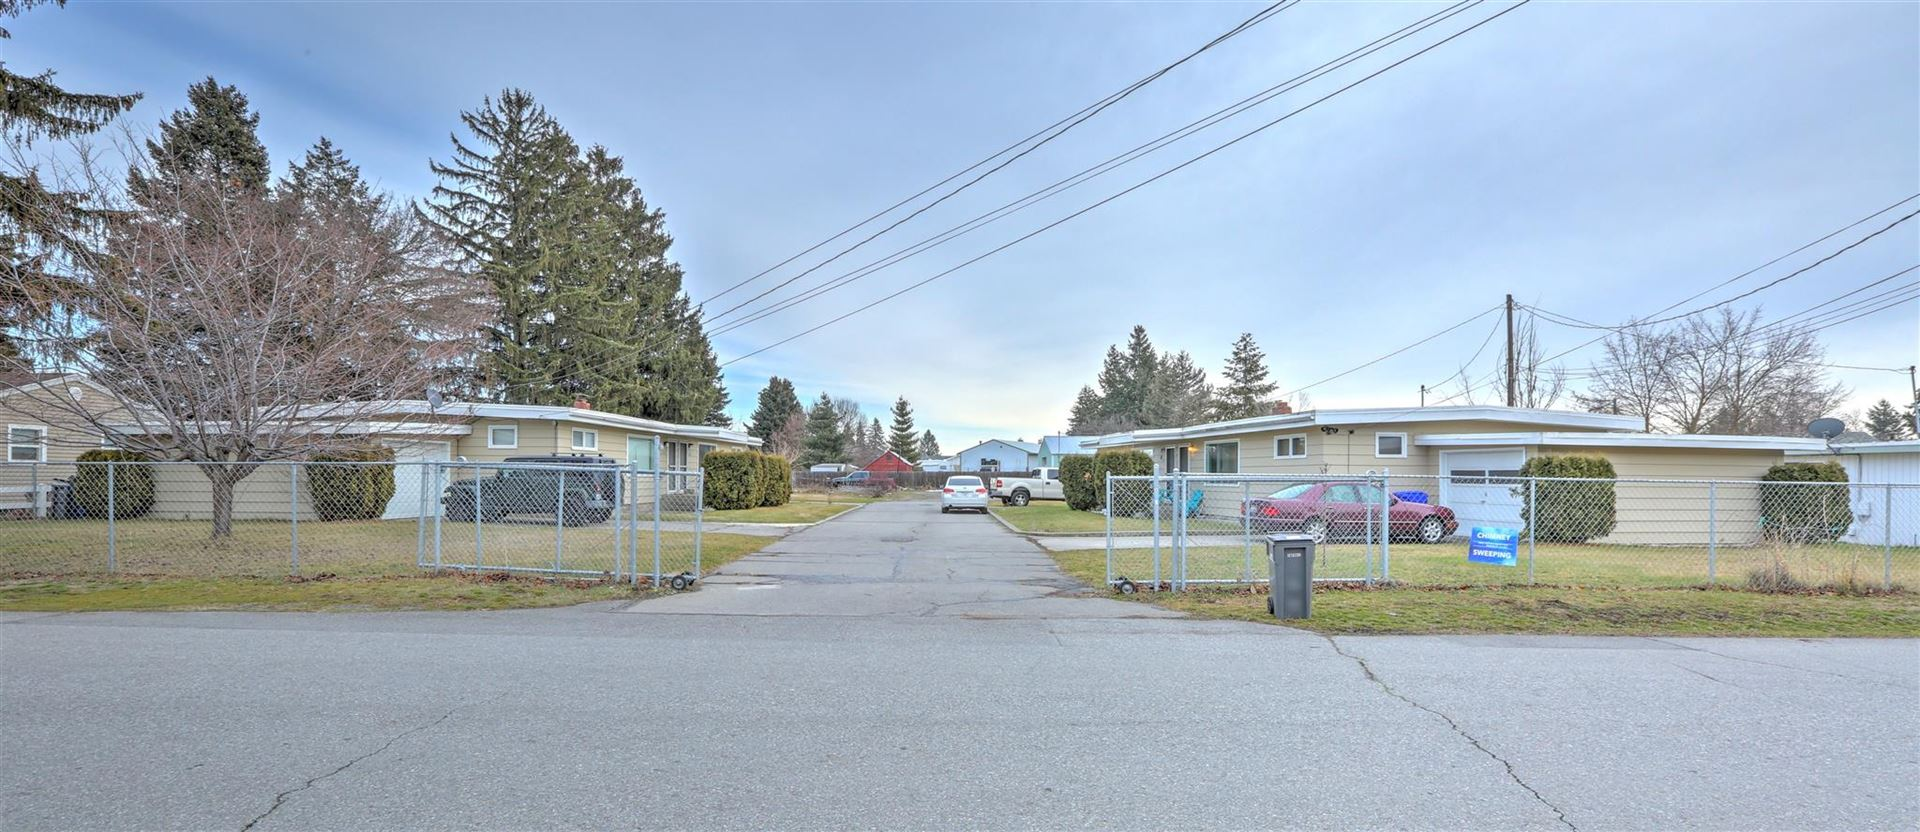 1102-1108 N Bessie Rd, Spokane Valley, WA 99212 - #: 202110732